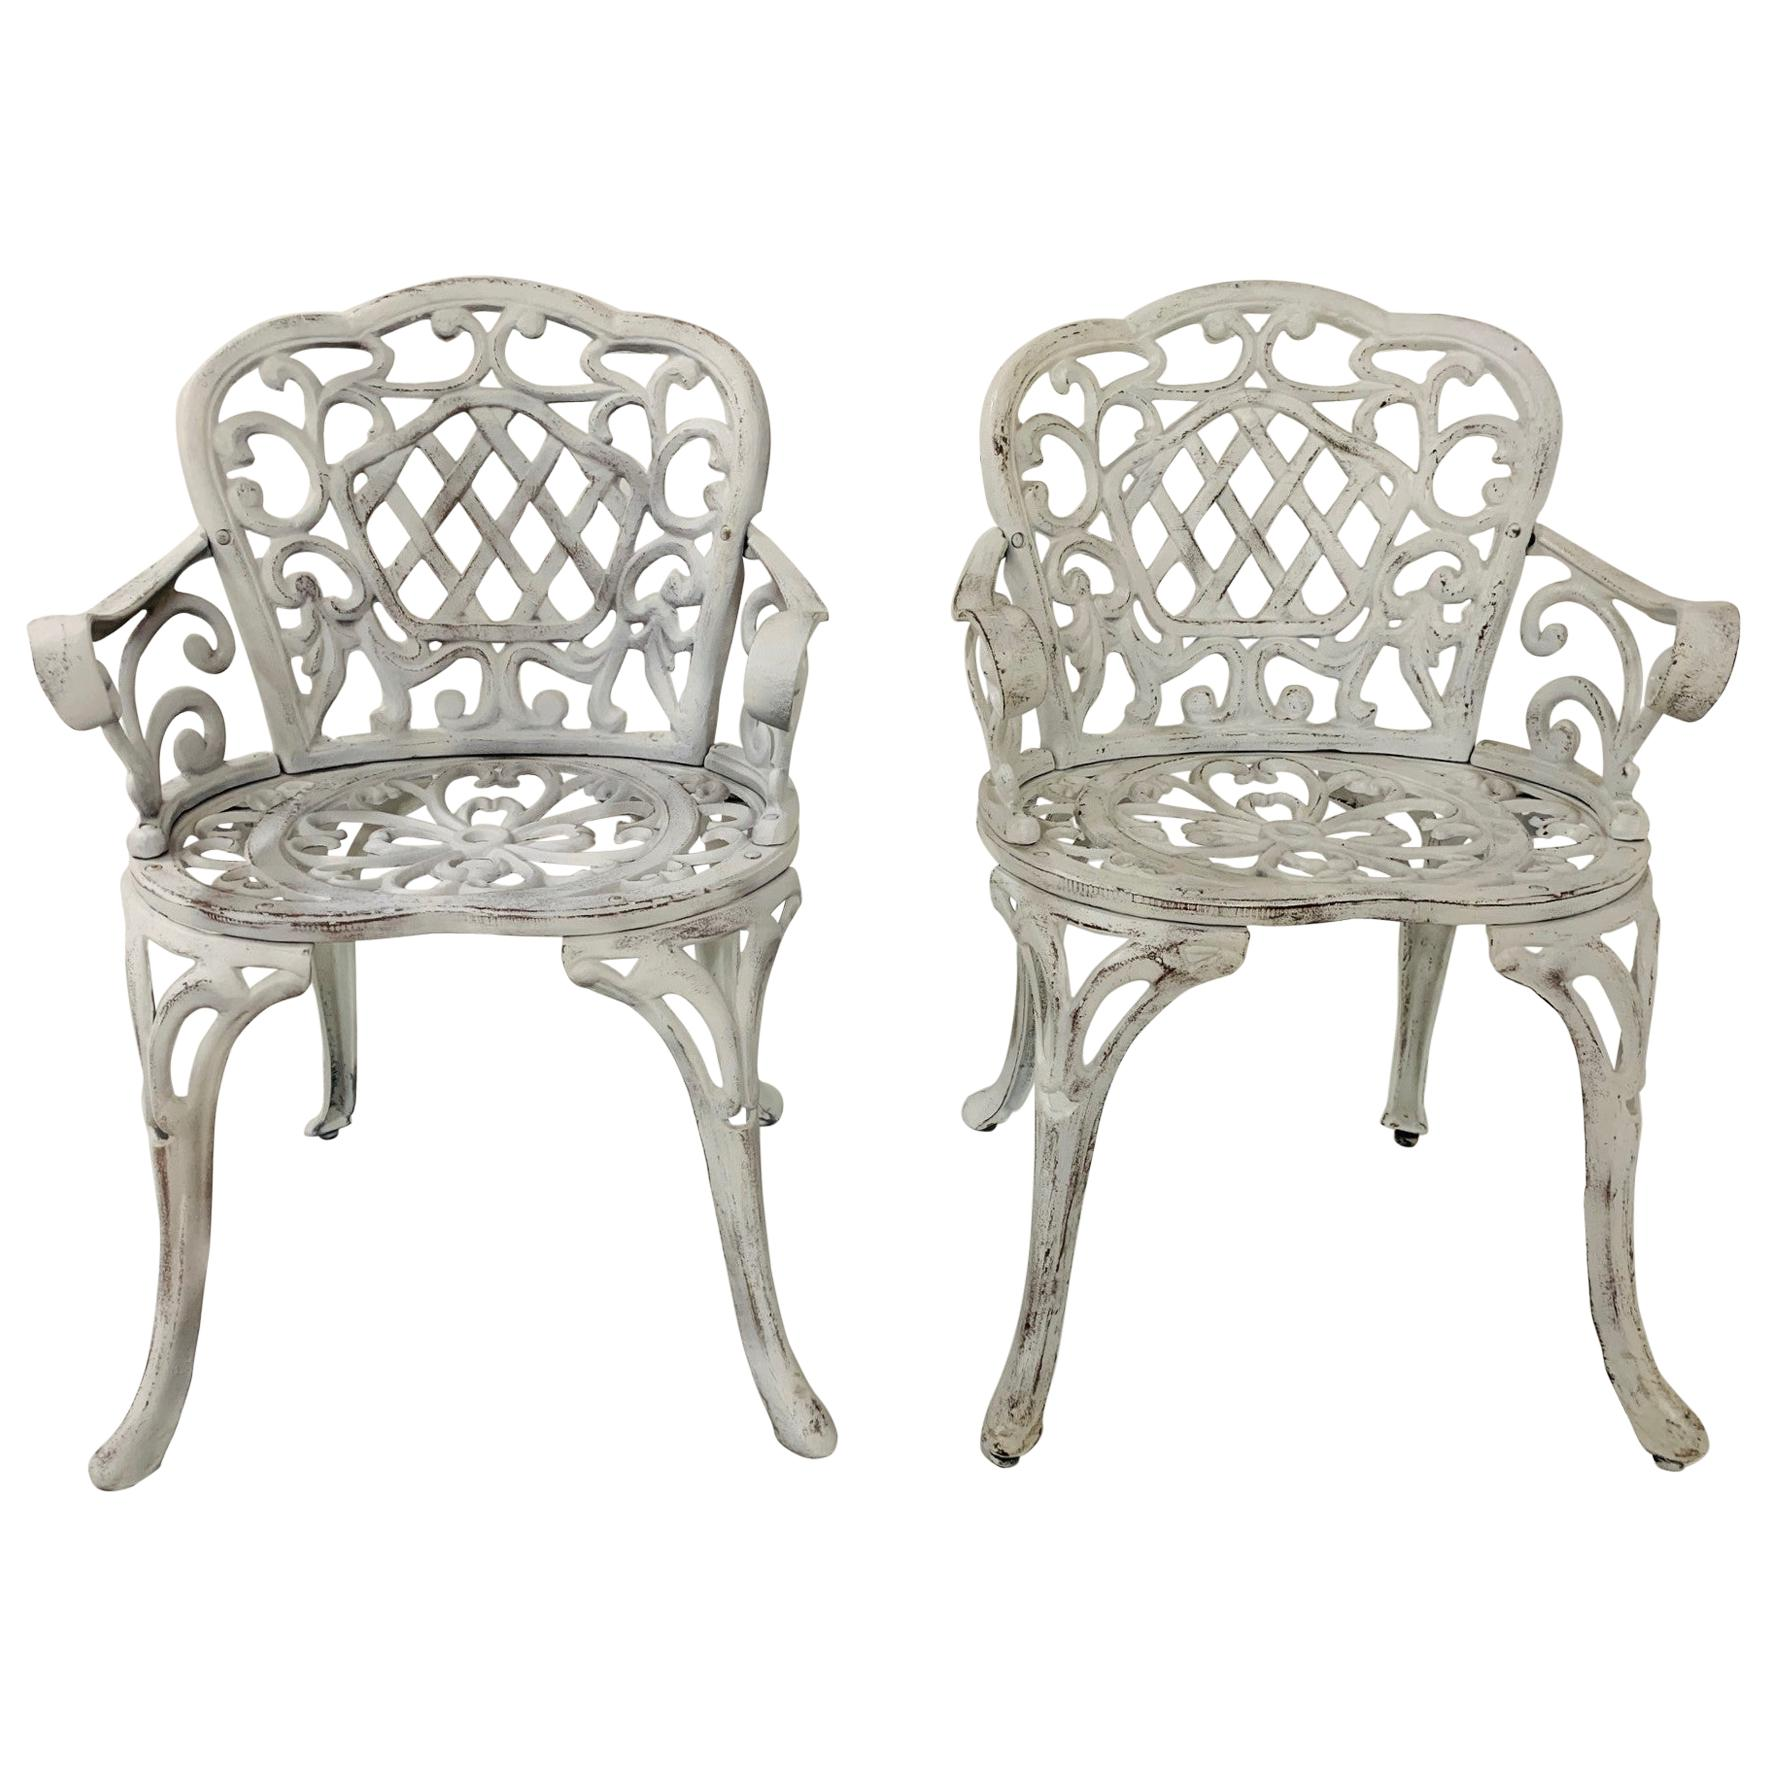 Pair of Early Cast Iron Garden Chairs